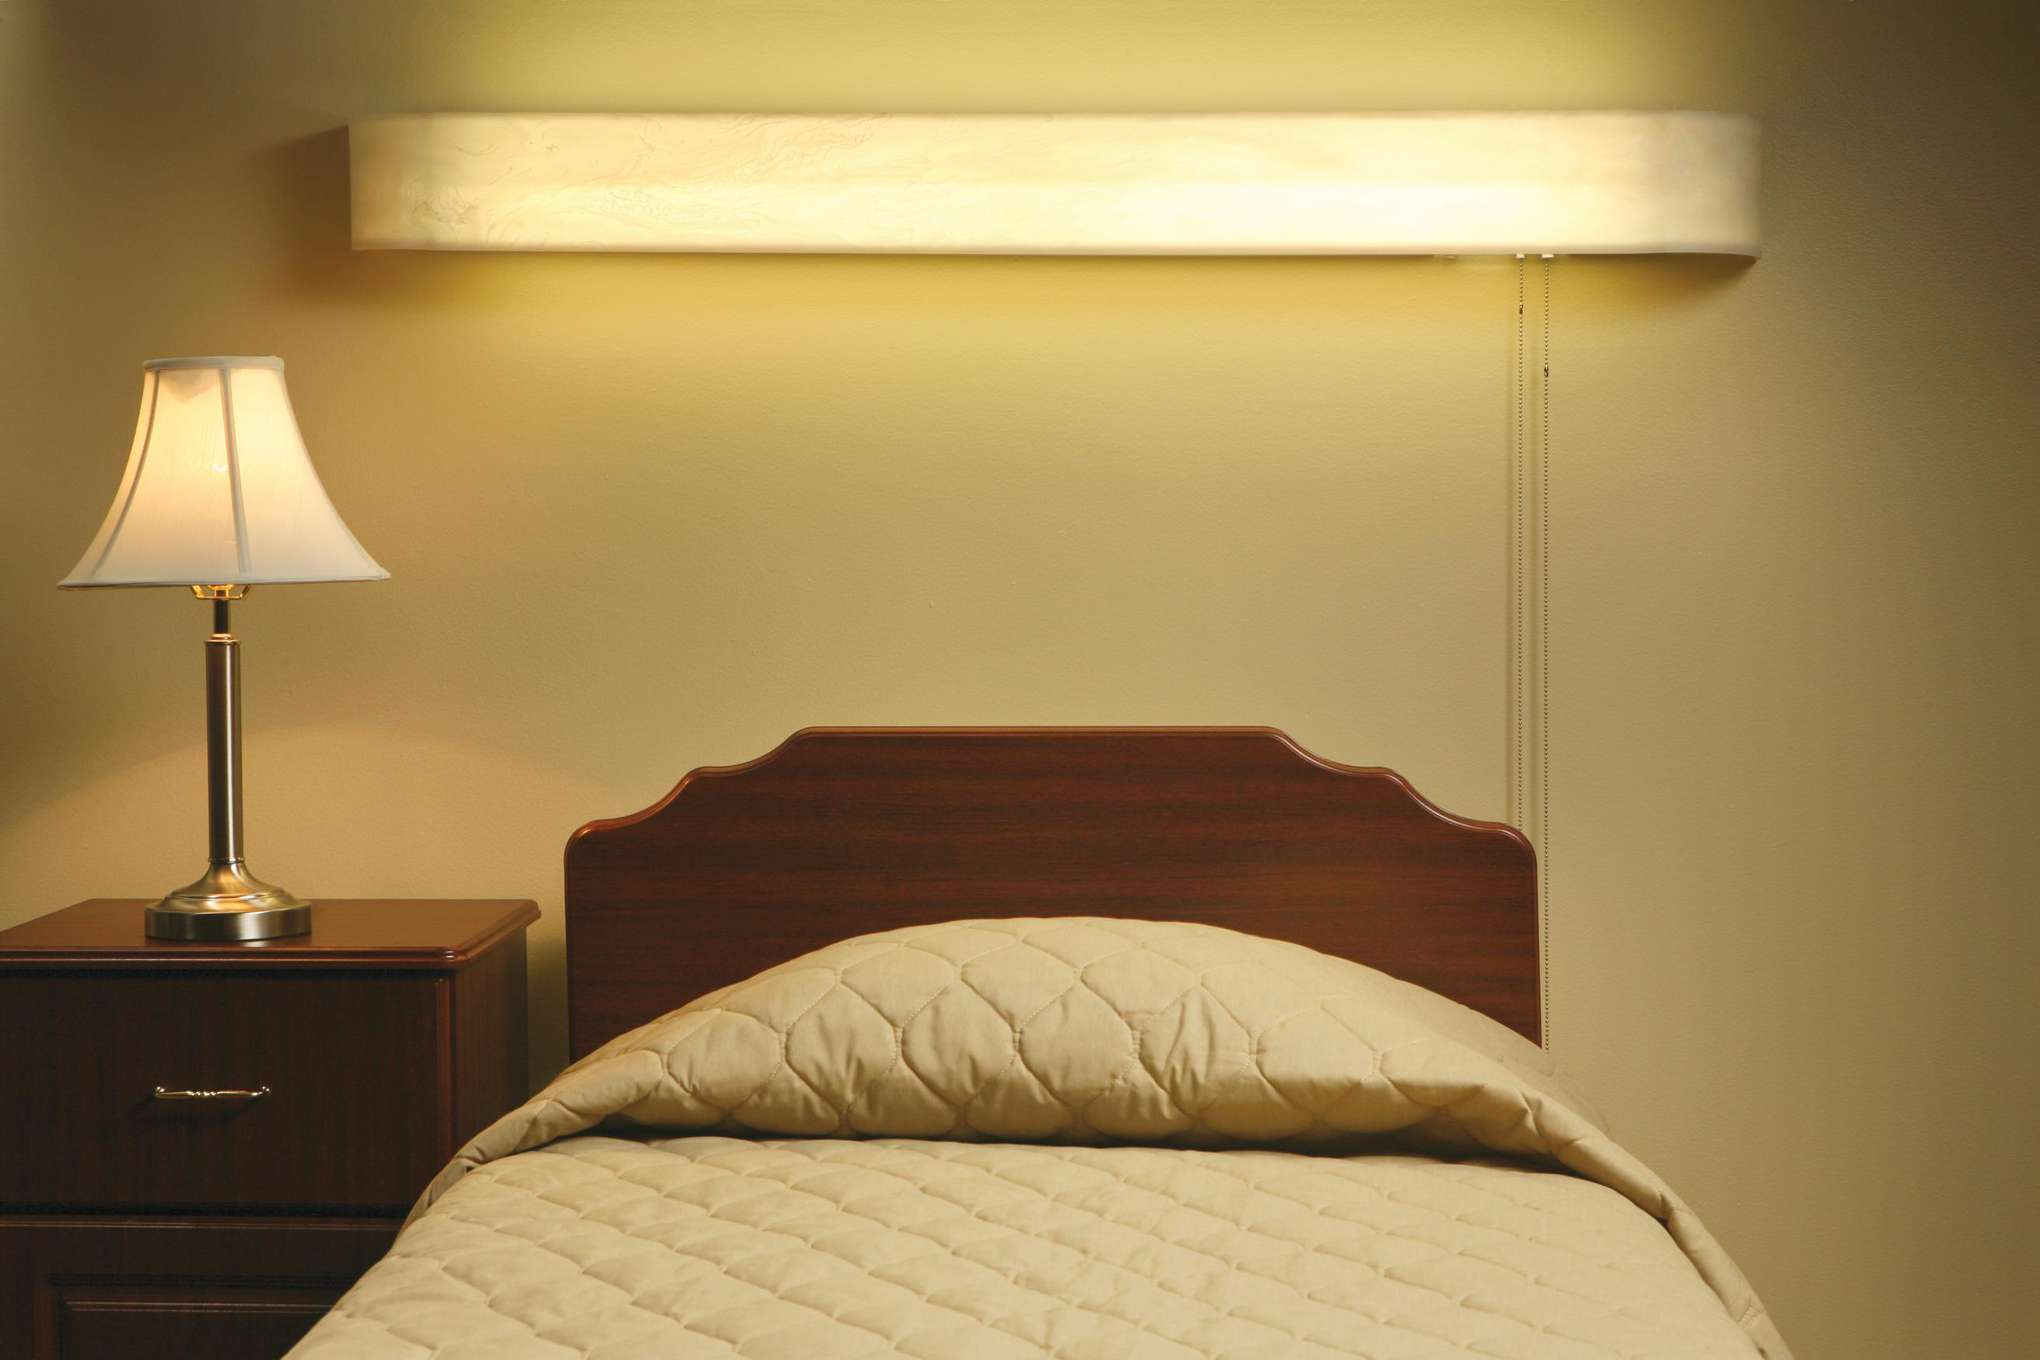 Scottsdale 2 Bulb Overbed Light With Switch 4 Ft